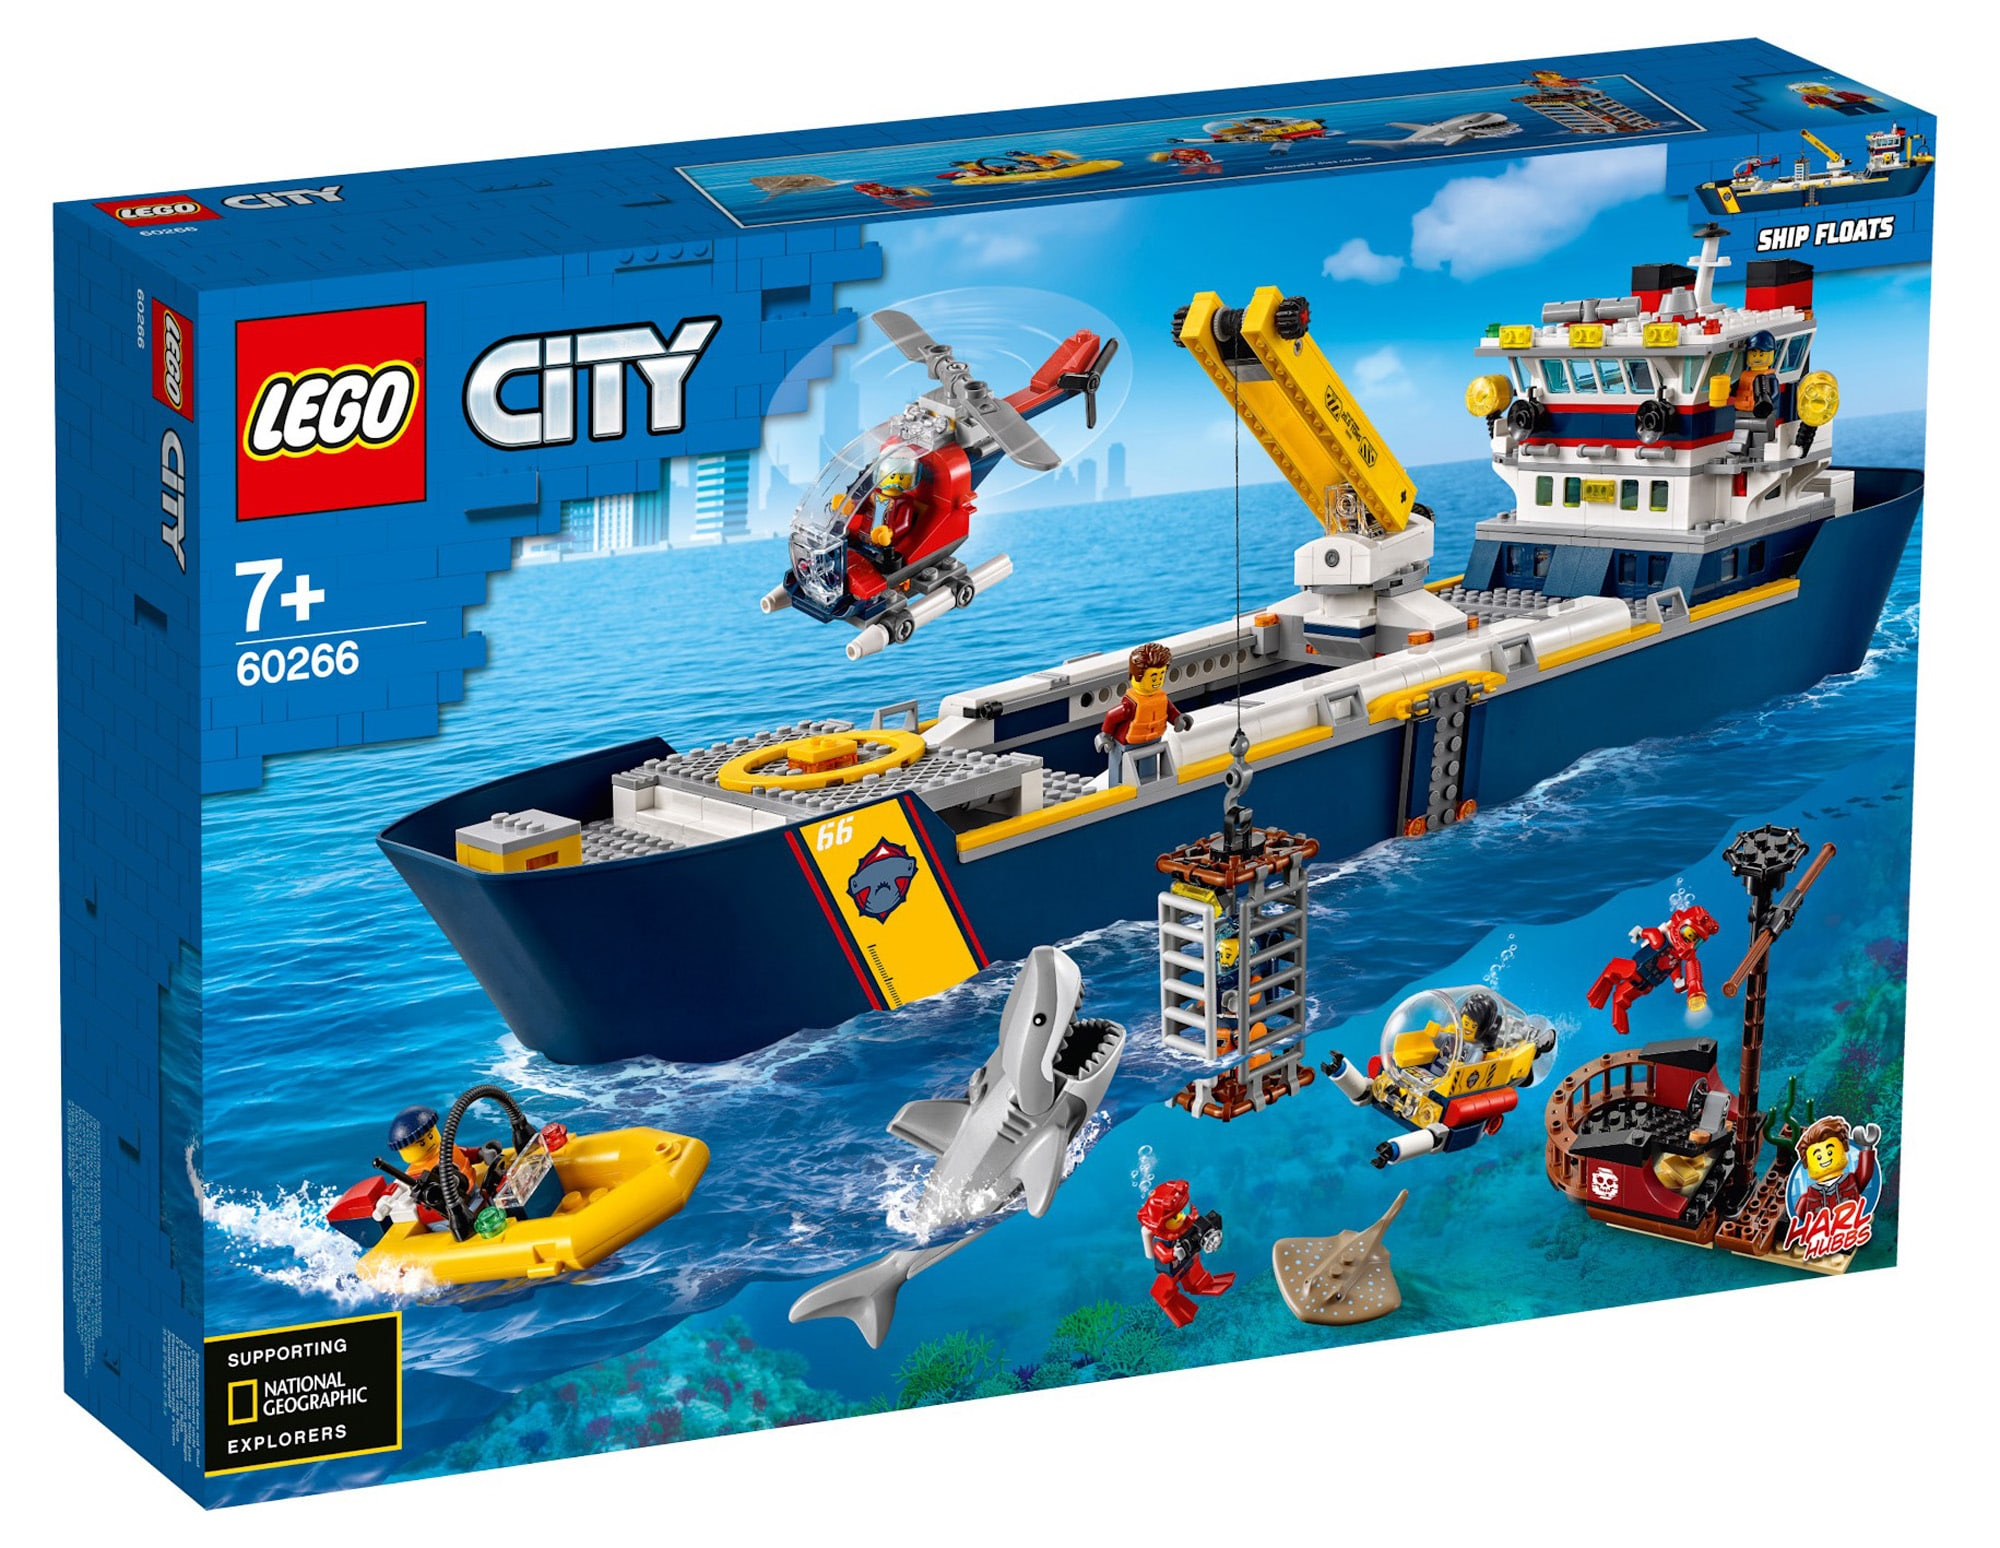 LEGO City 60266 Ocean Exploration Ship 14